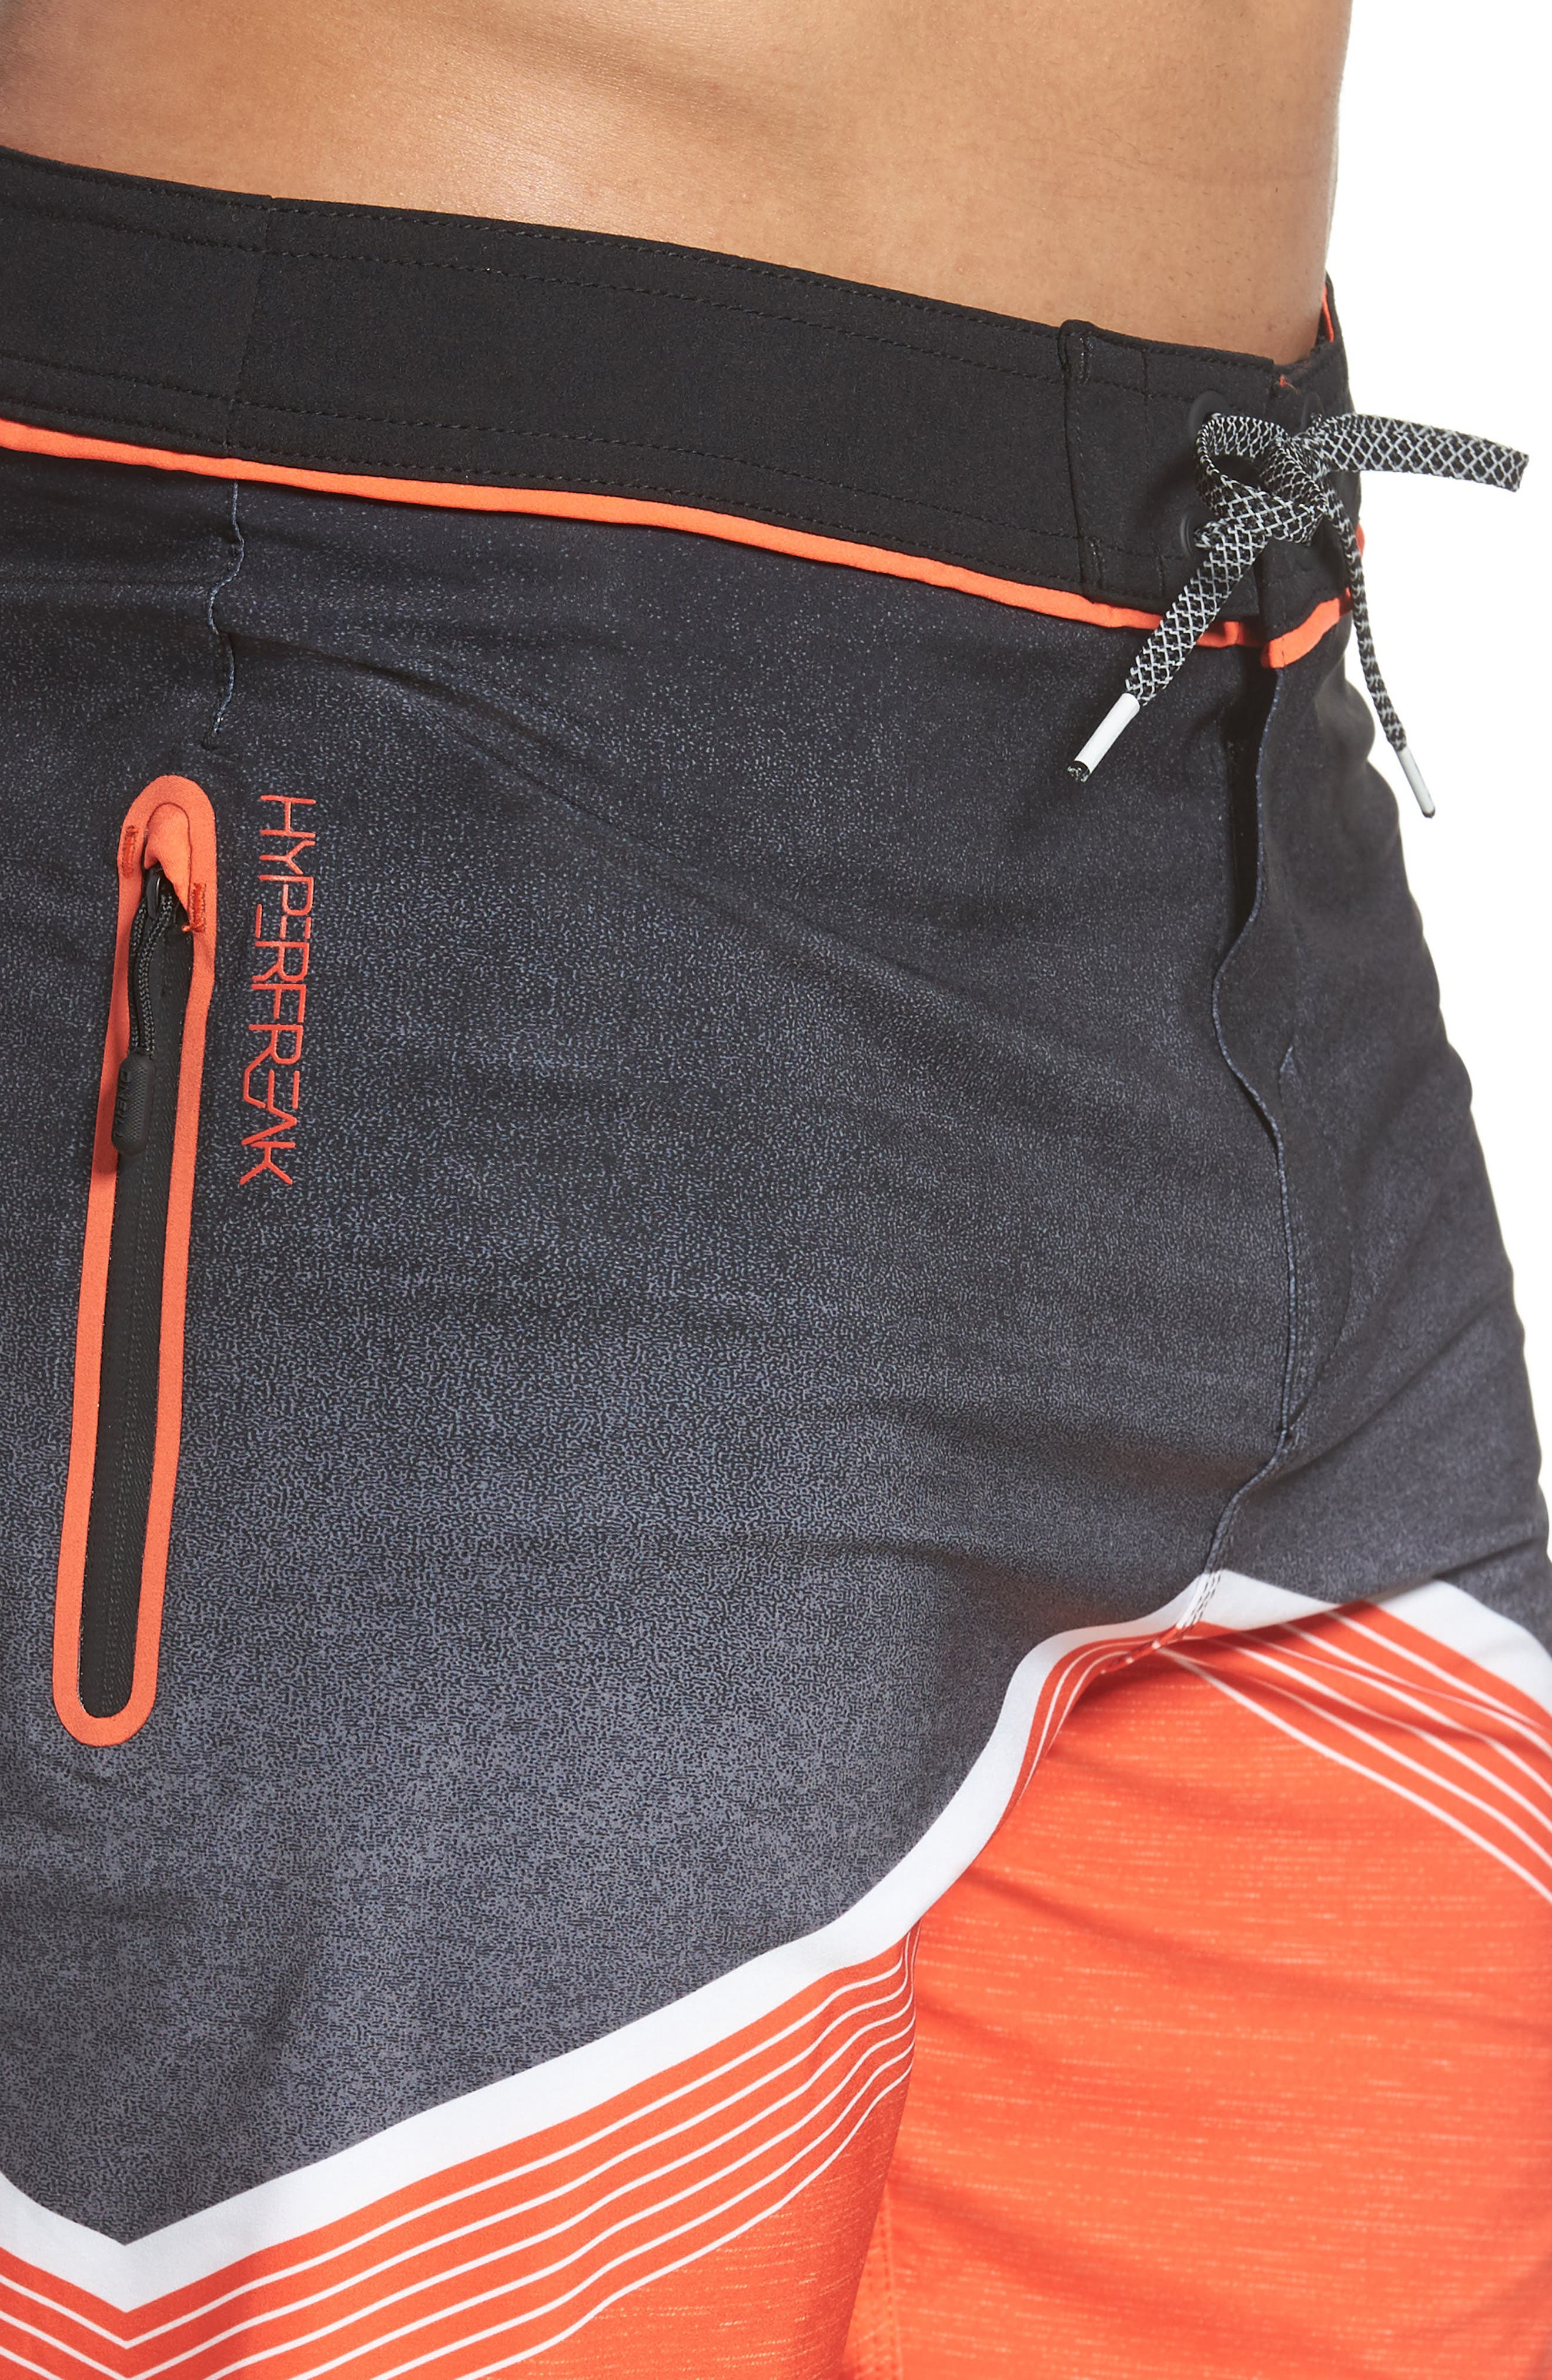 Hyperfreak Stretch Board Shorts,                             Alternate thumbnail 28, color,